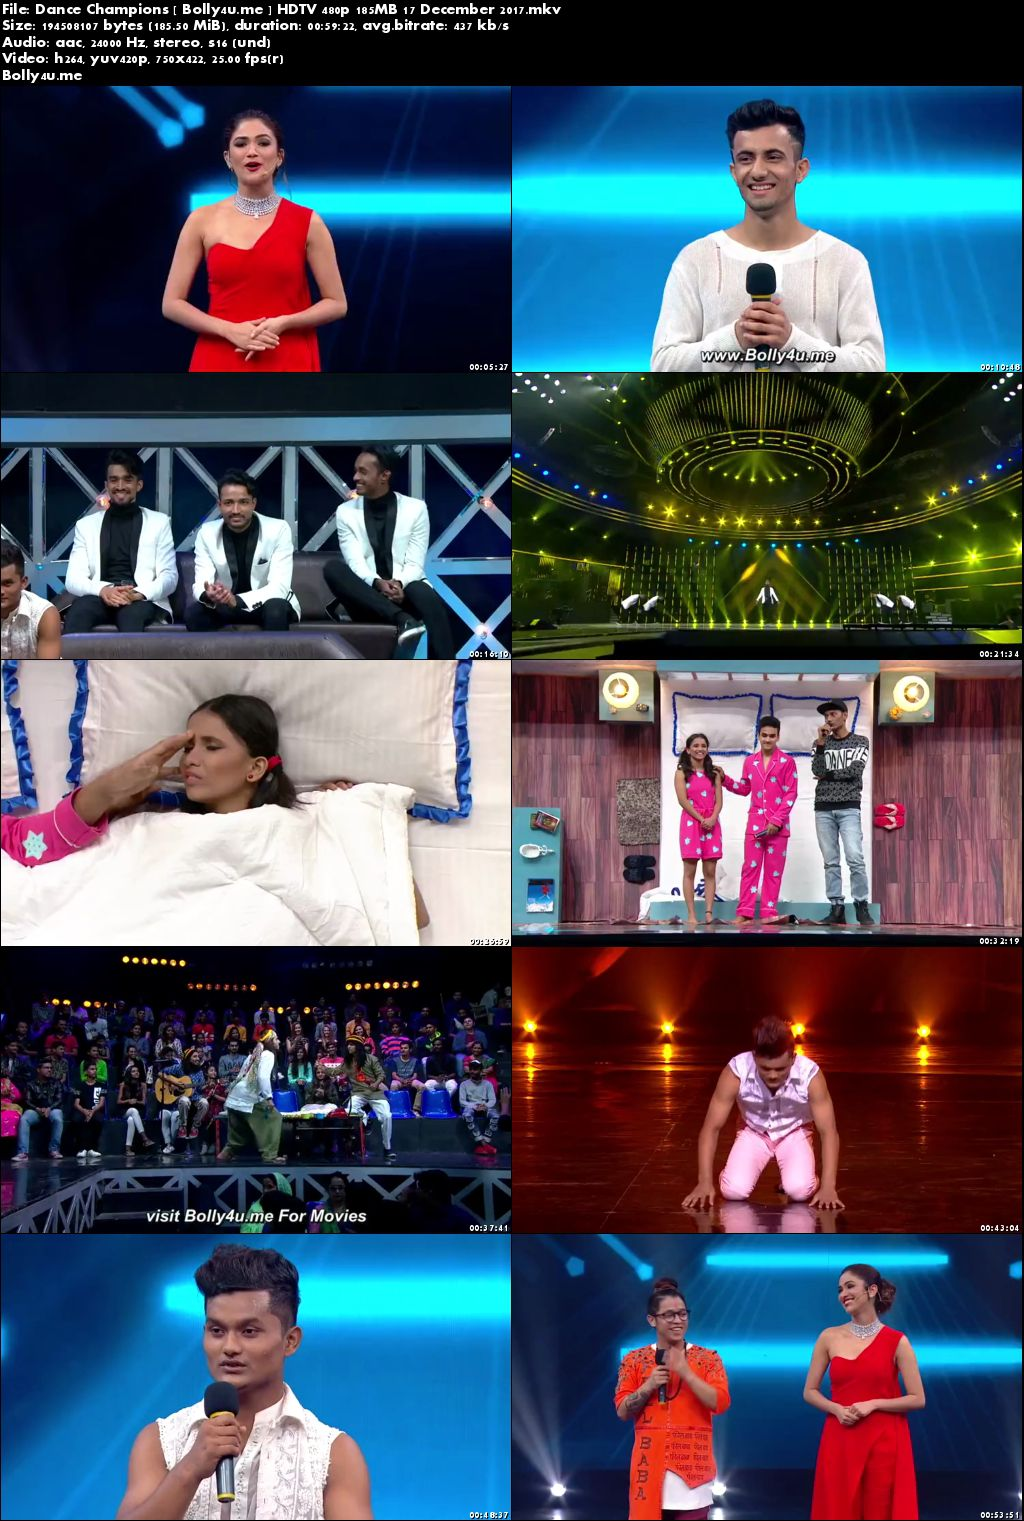 Dance Champions HDTV 480p 180MB 17 Dec 2017 Download